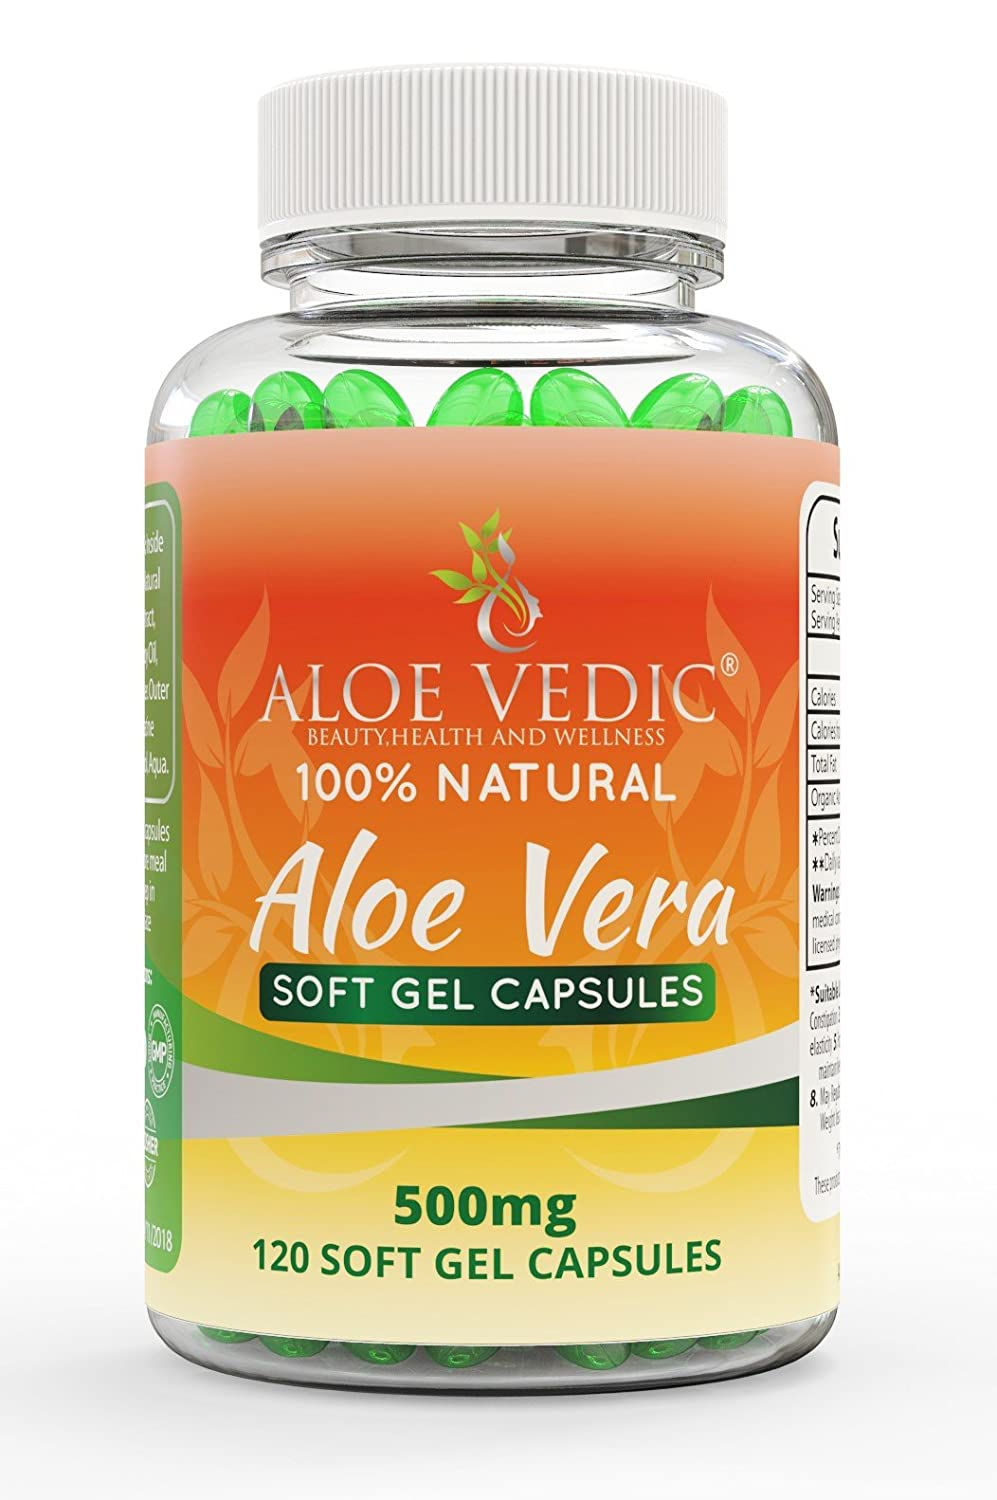 Aloe Vera Soft Gel Capsules-100% Natural Tablets-For Colon Cleanse Detox Digestion Metabolism and skin care, 500mg (120 Pills) By ALOEVEDIC ALOE VEDIC BEAUTY HEALTH AND WELLNESS AloeVeraSoftgel